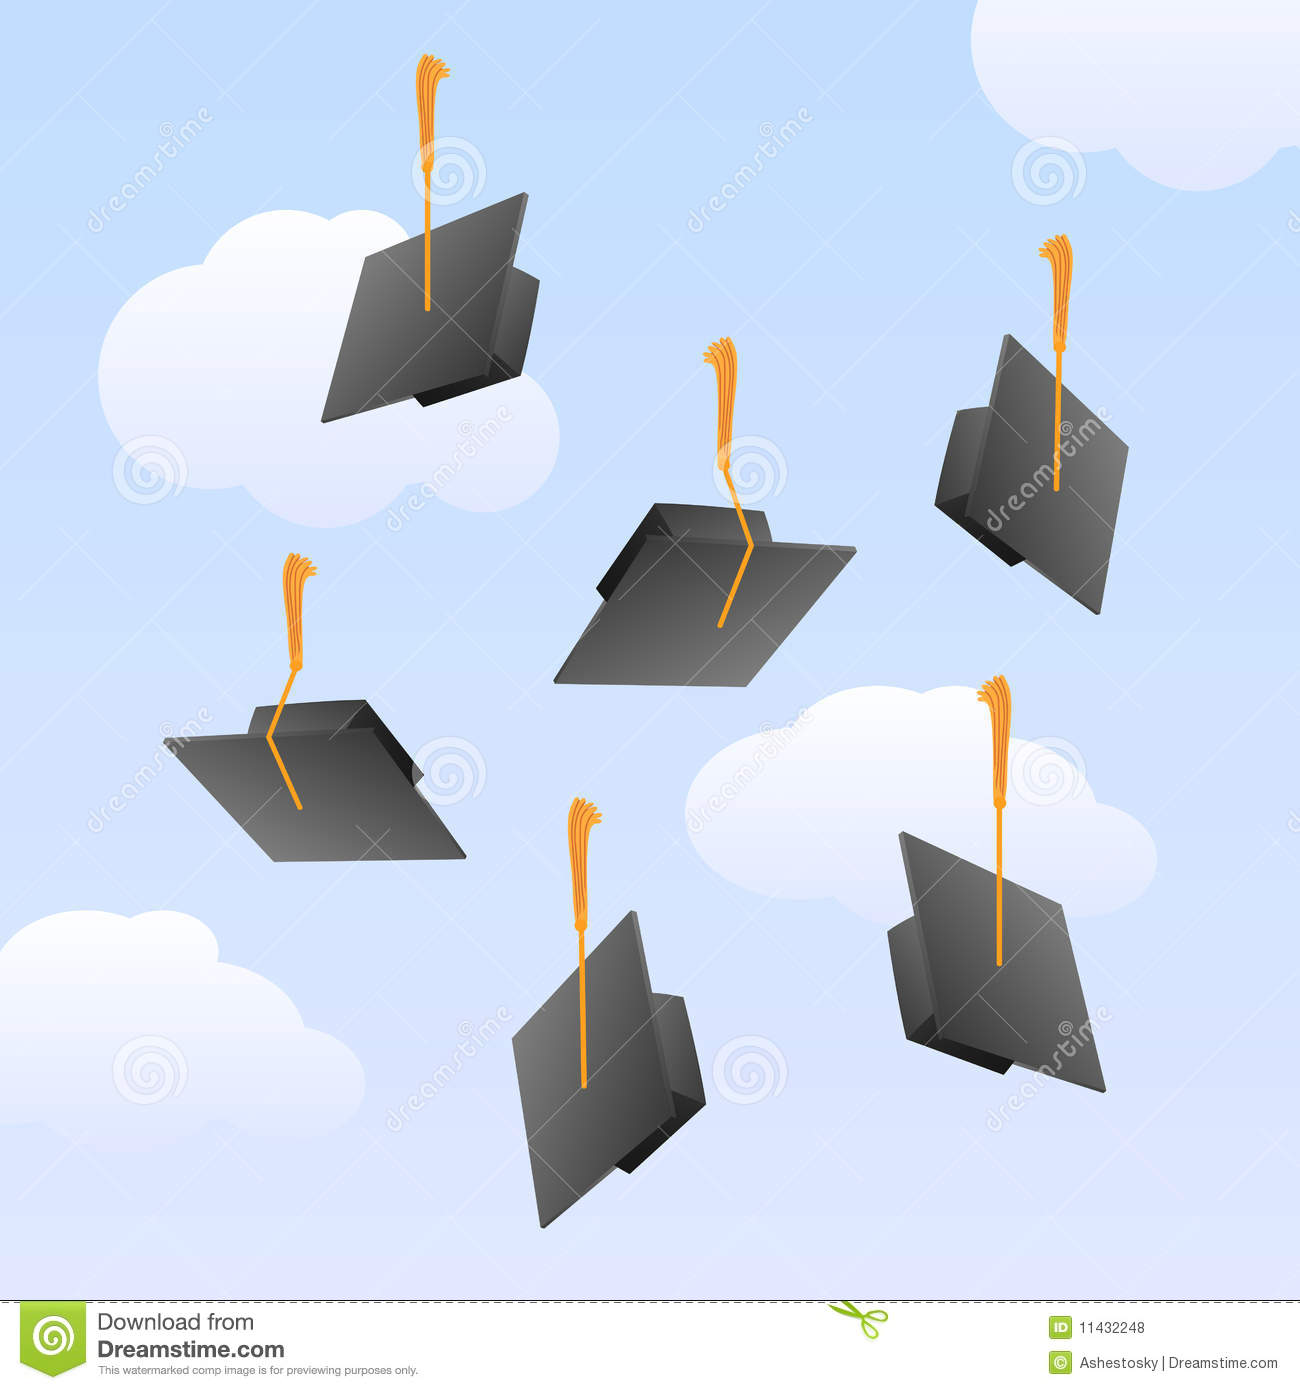 Graduation Caps In The Air Royalty Free Stock Photos ...